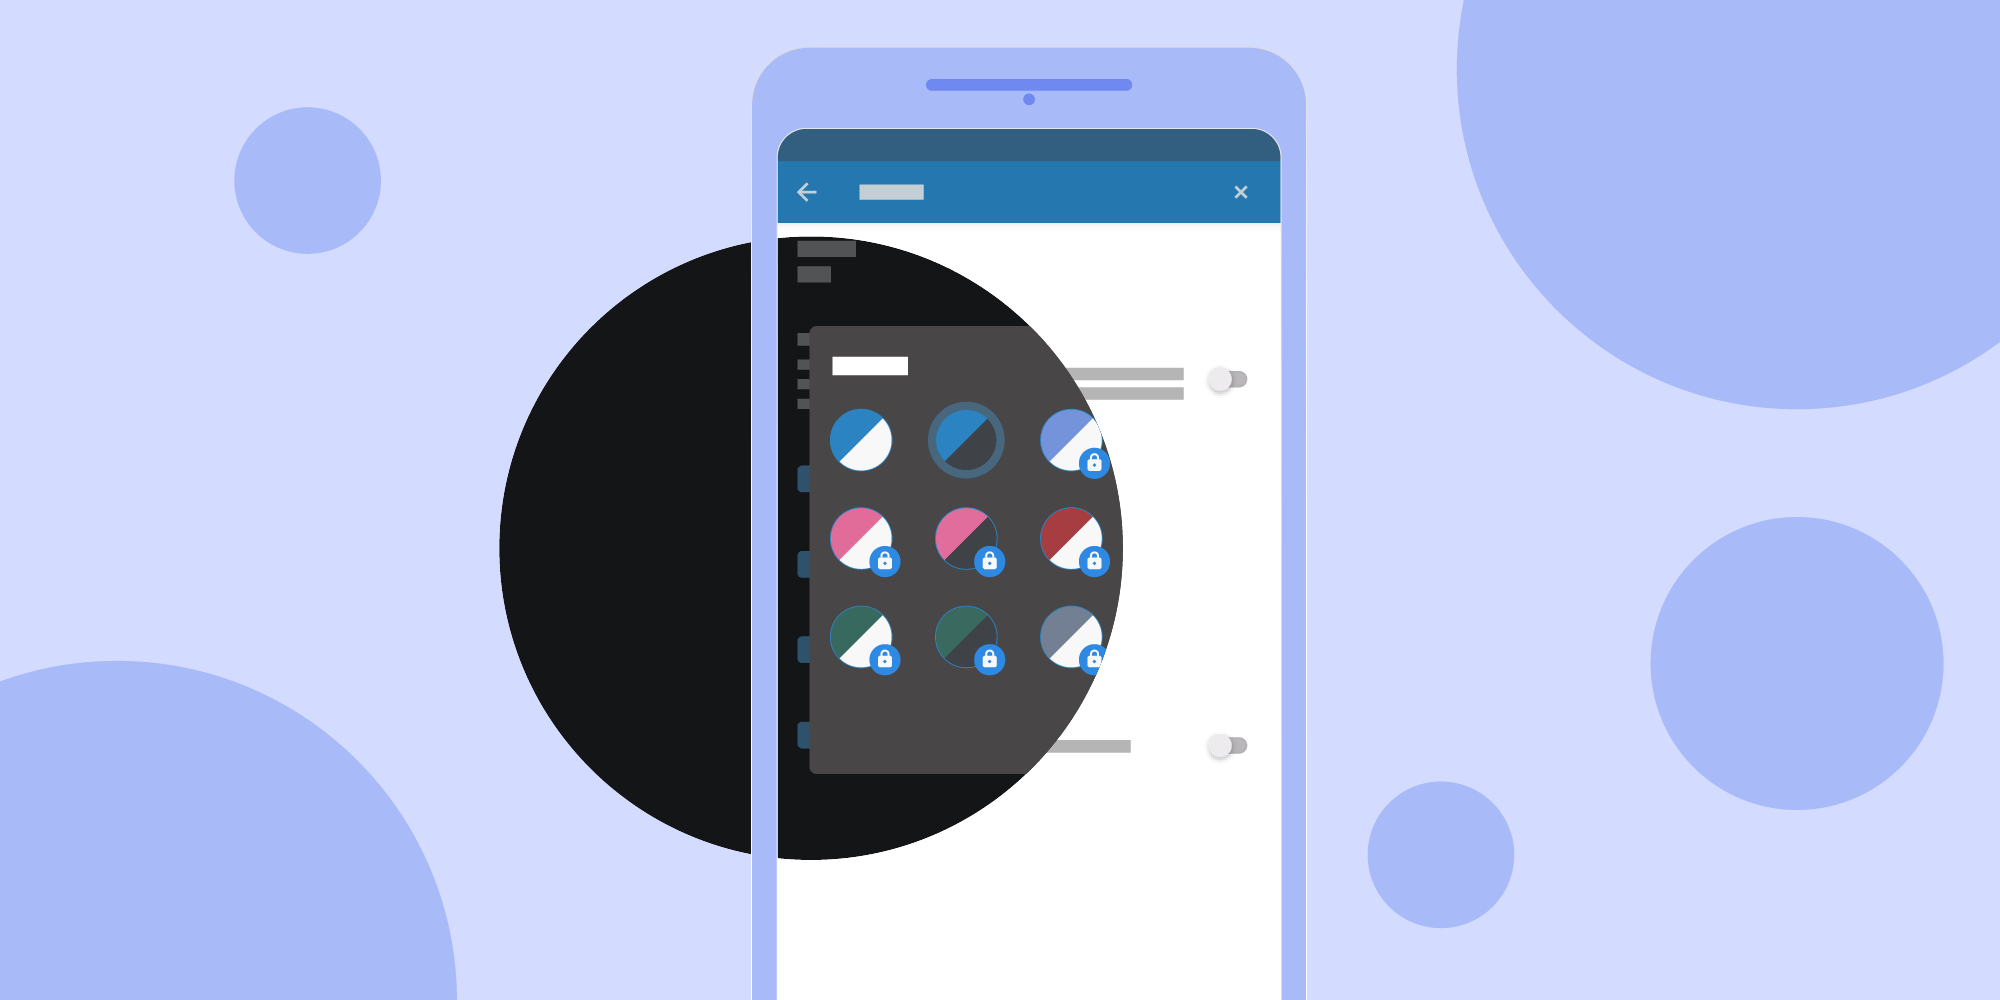 Illustration: Change Android Themes Instantly Using the Circular Reveal Animation